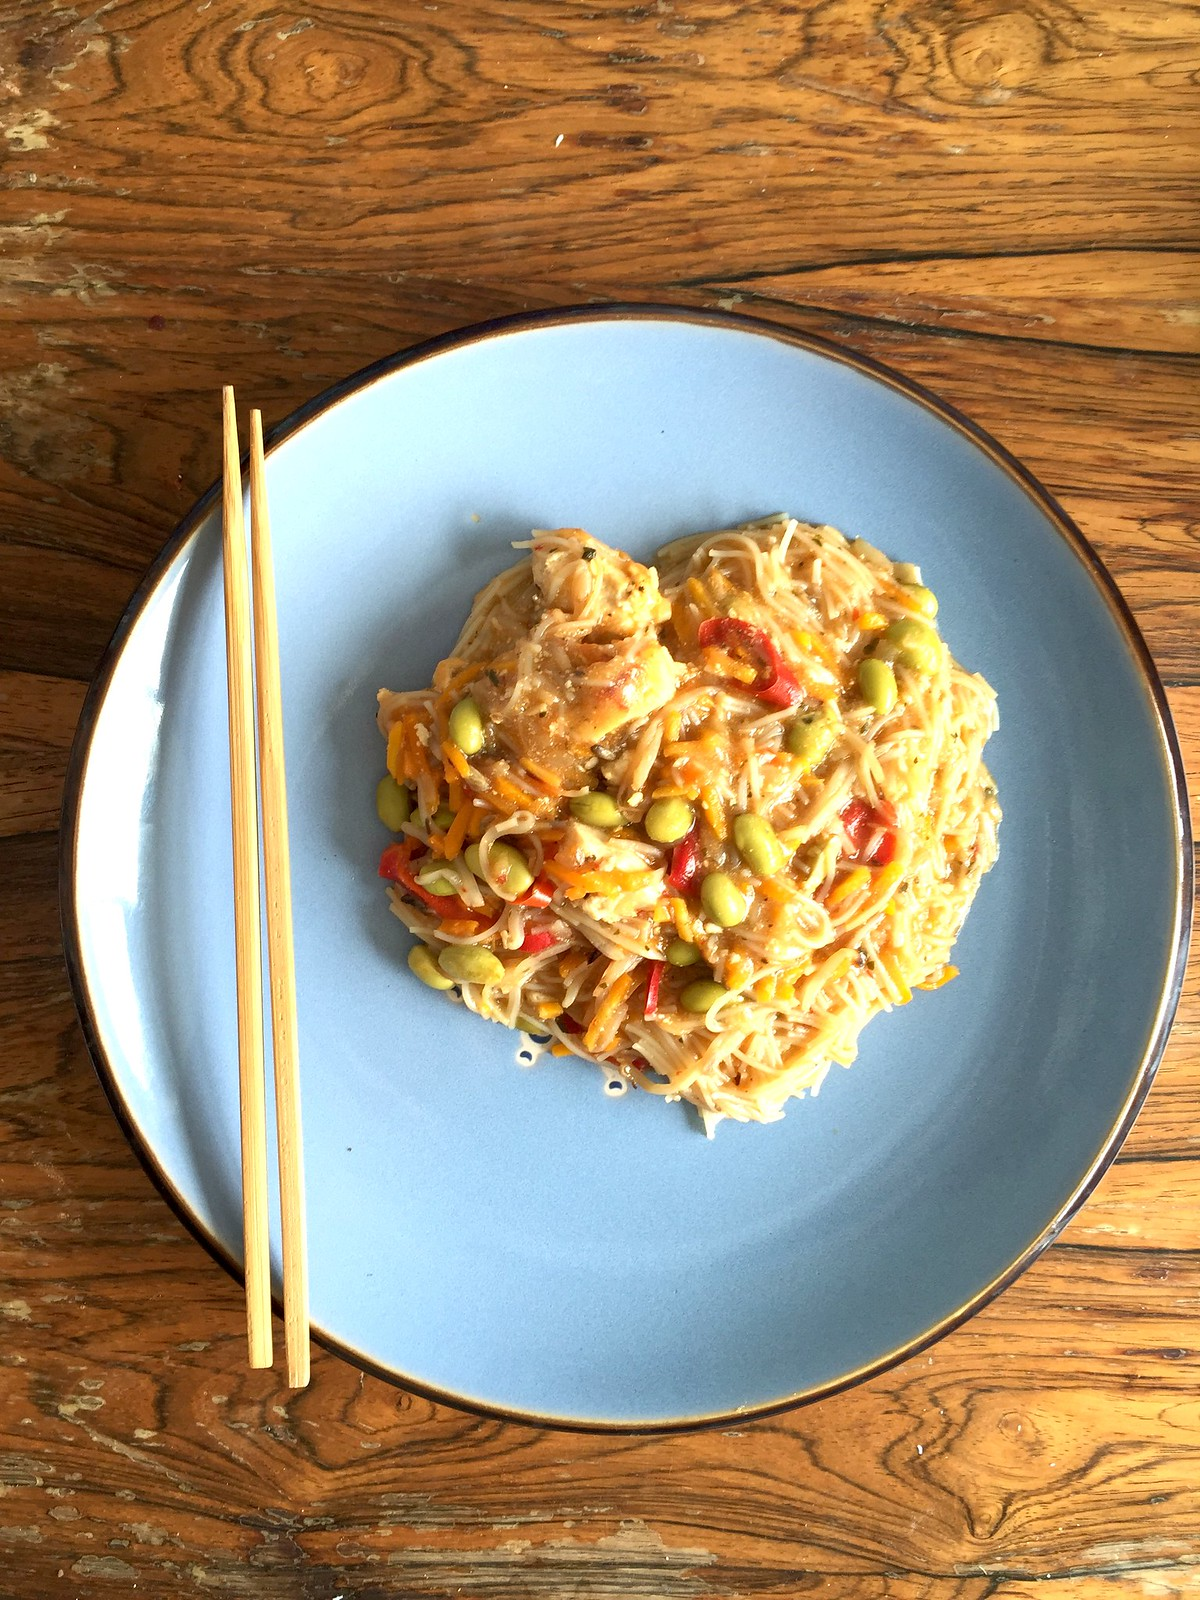 Kirsty's Gluten Free Ready Meals - Asian Chicken Noodles